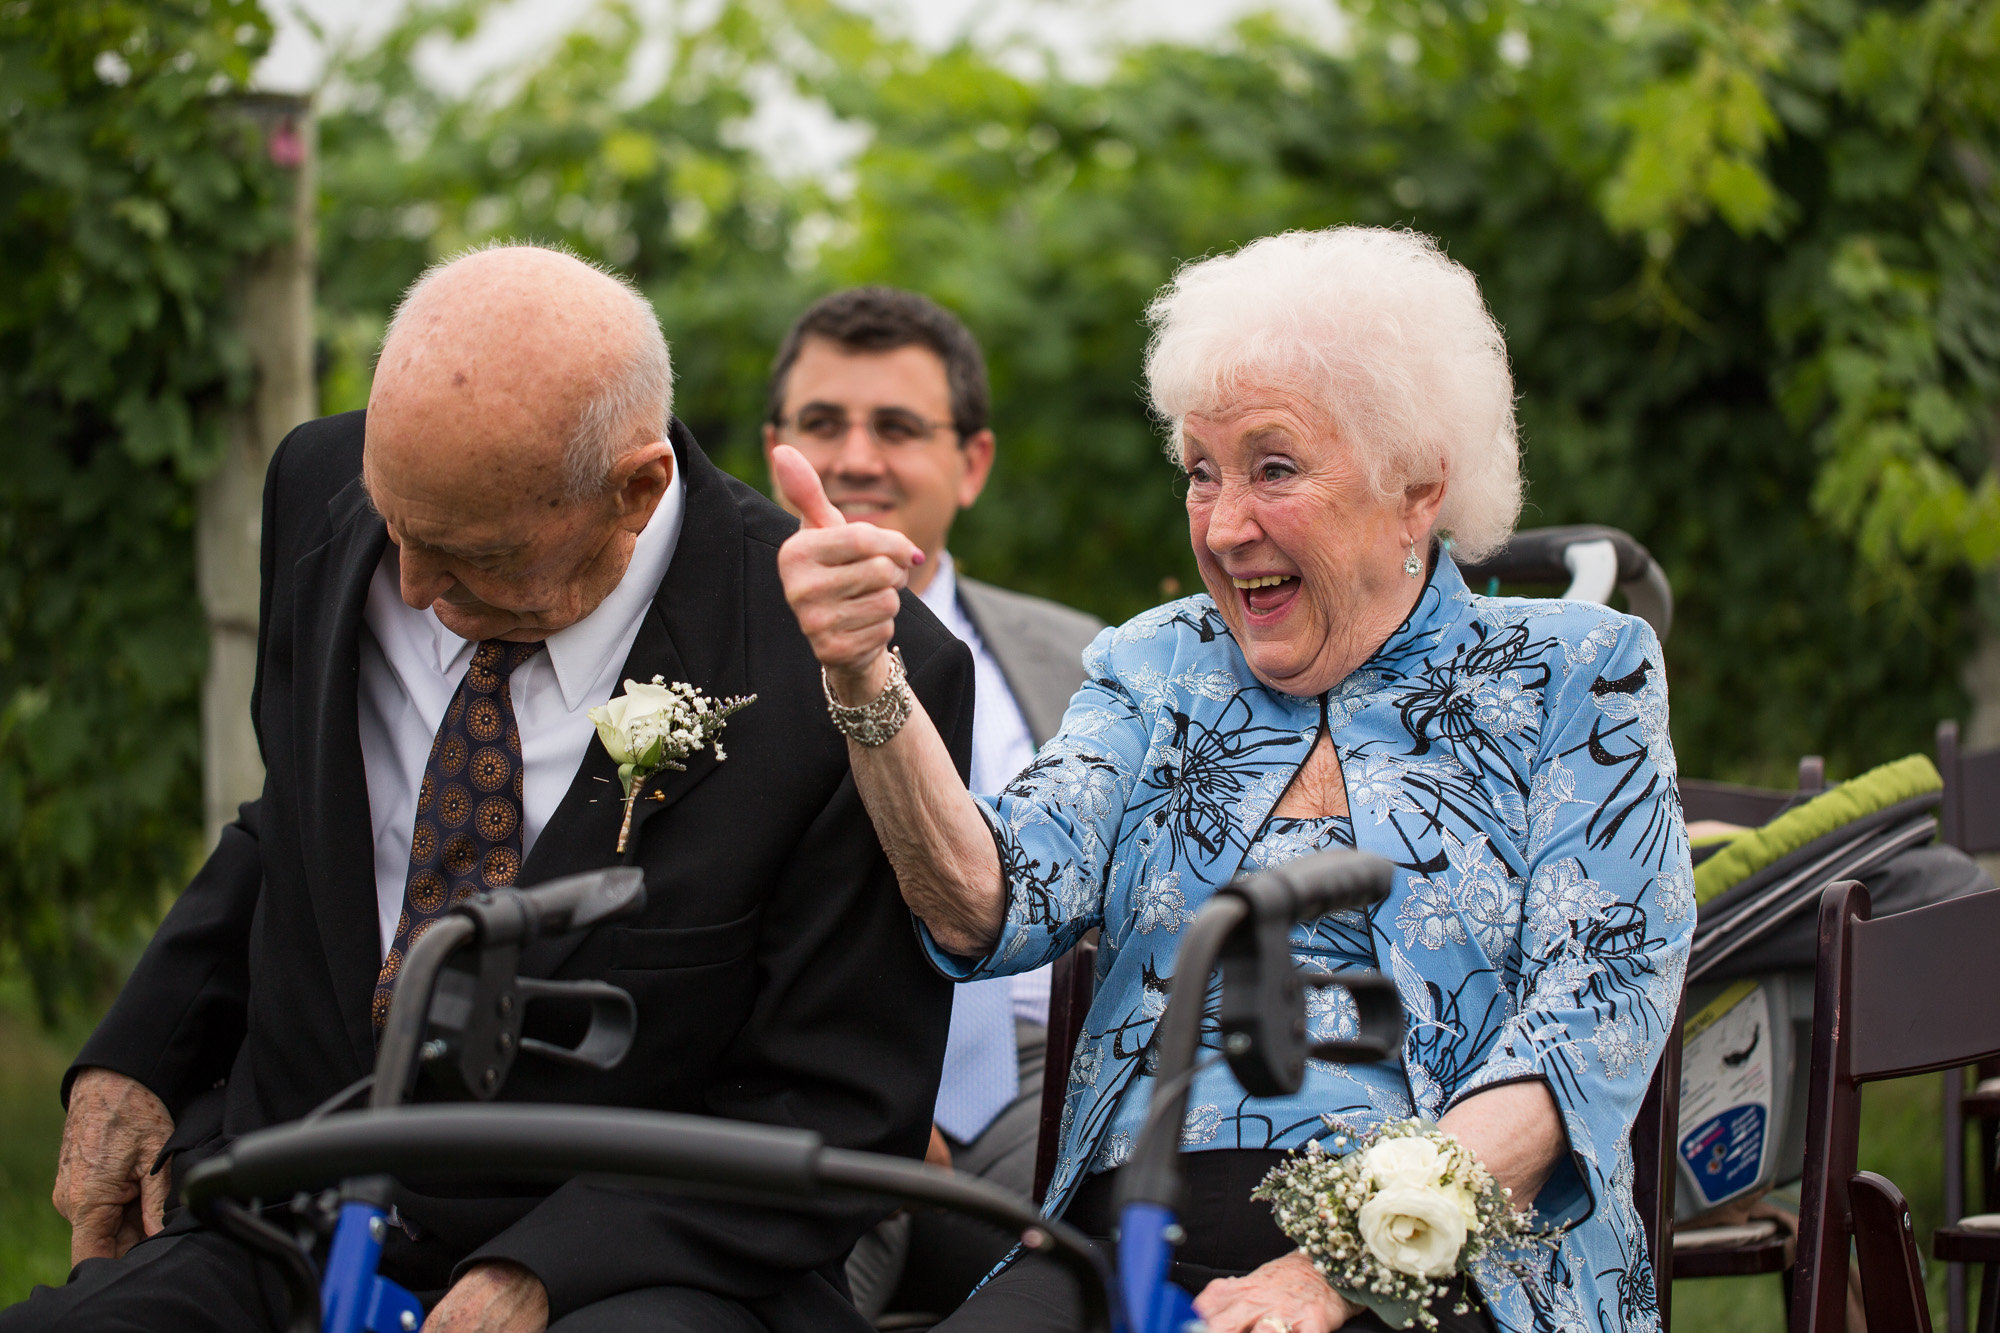 Candid ceremony wedding photography in CT at Jonathan Edwards